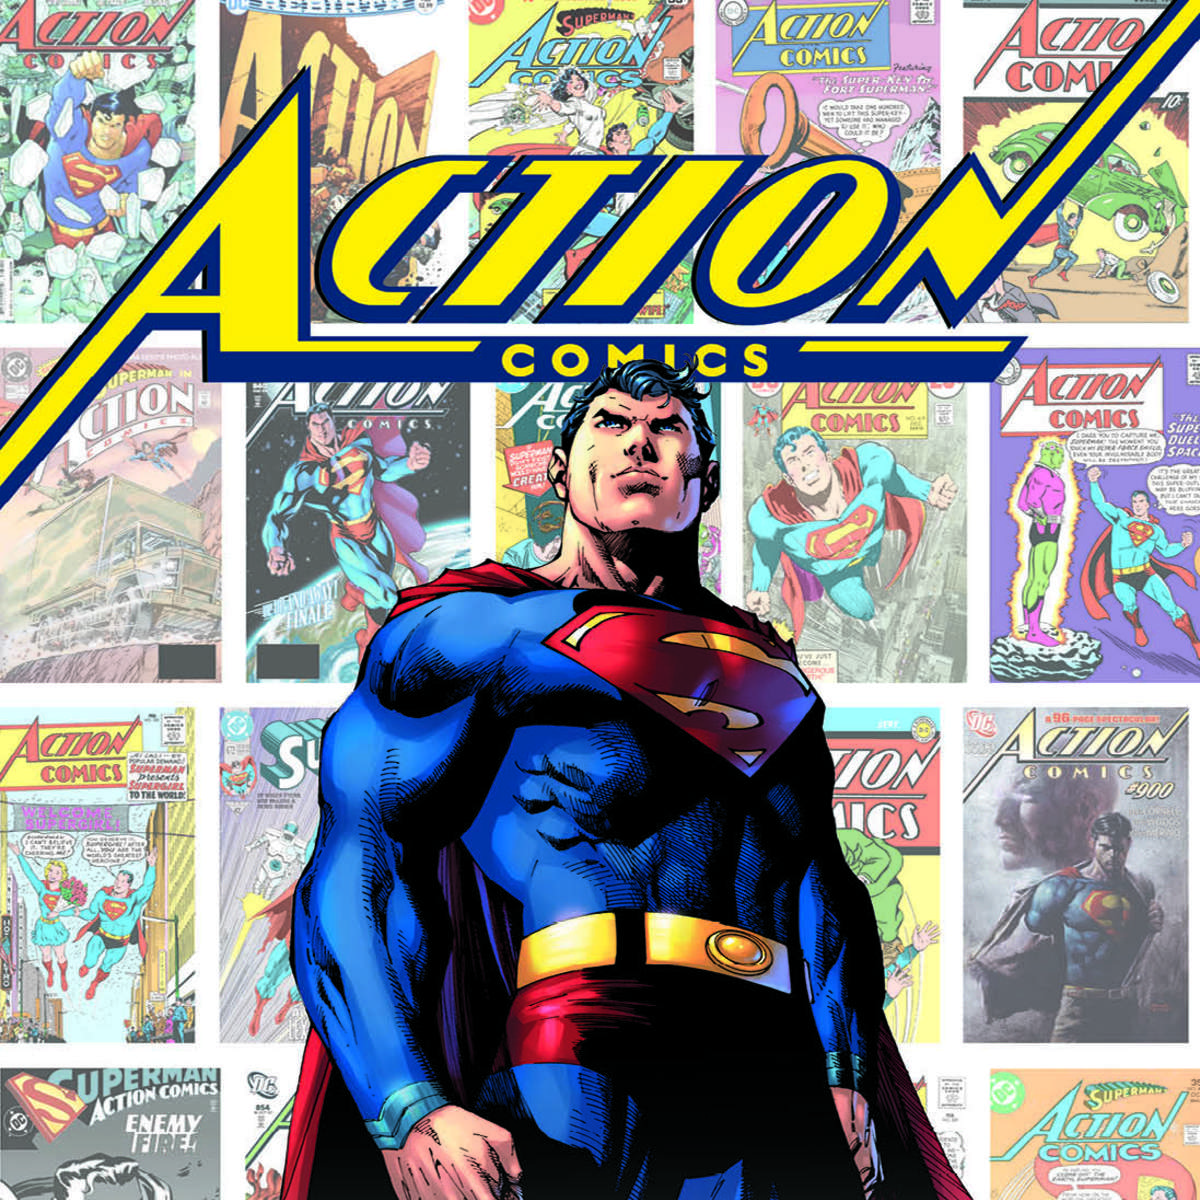 action_comics_1000_80_years_of_superman.jpg